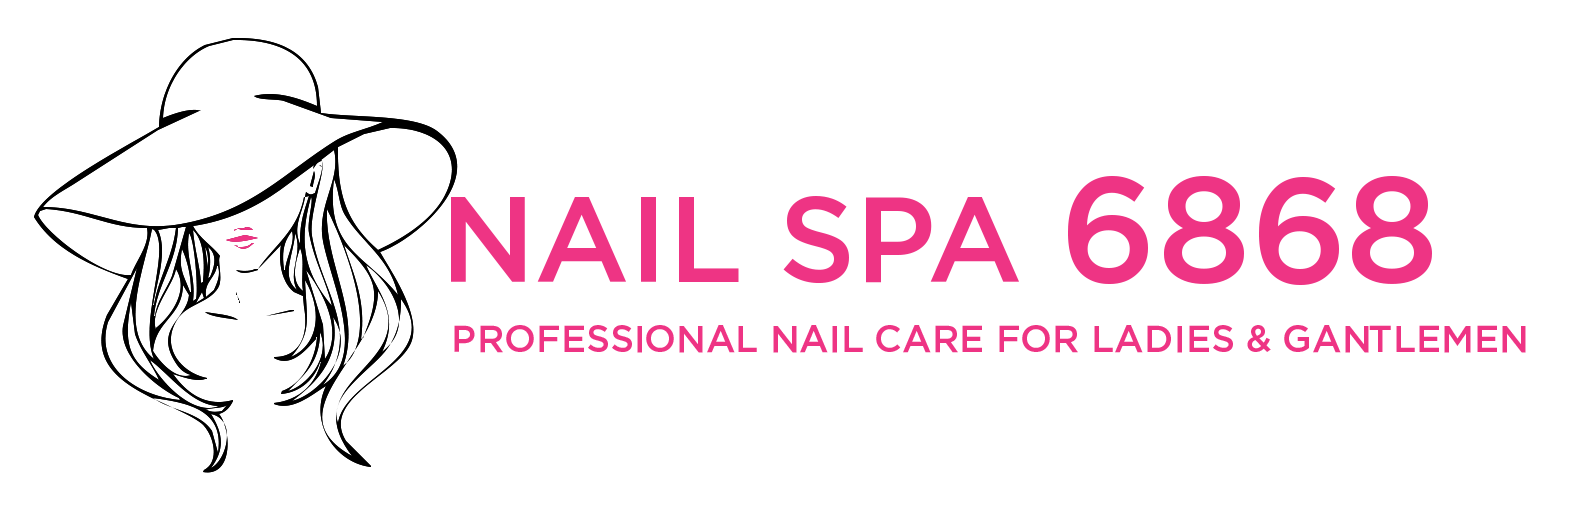 Nailspa6868 - Nail salon near me | Manicure | Pedicure| waxing | Hespeler Rd Cambridge, ON N1R 6J7